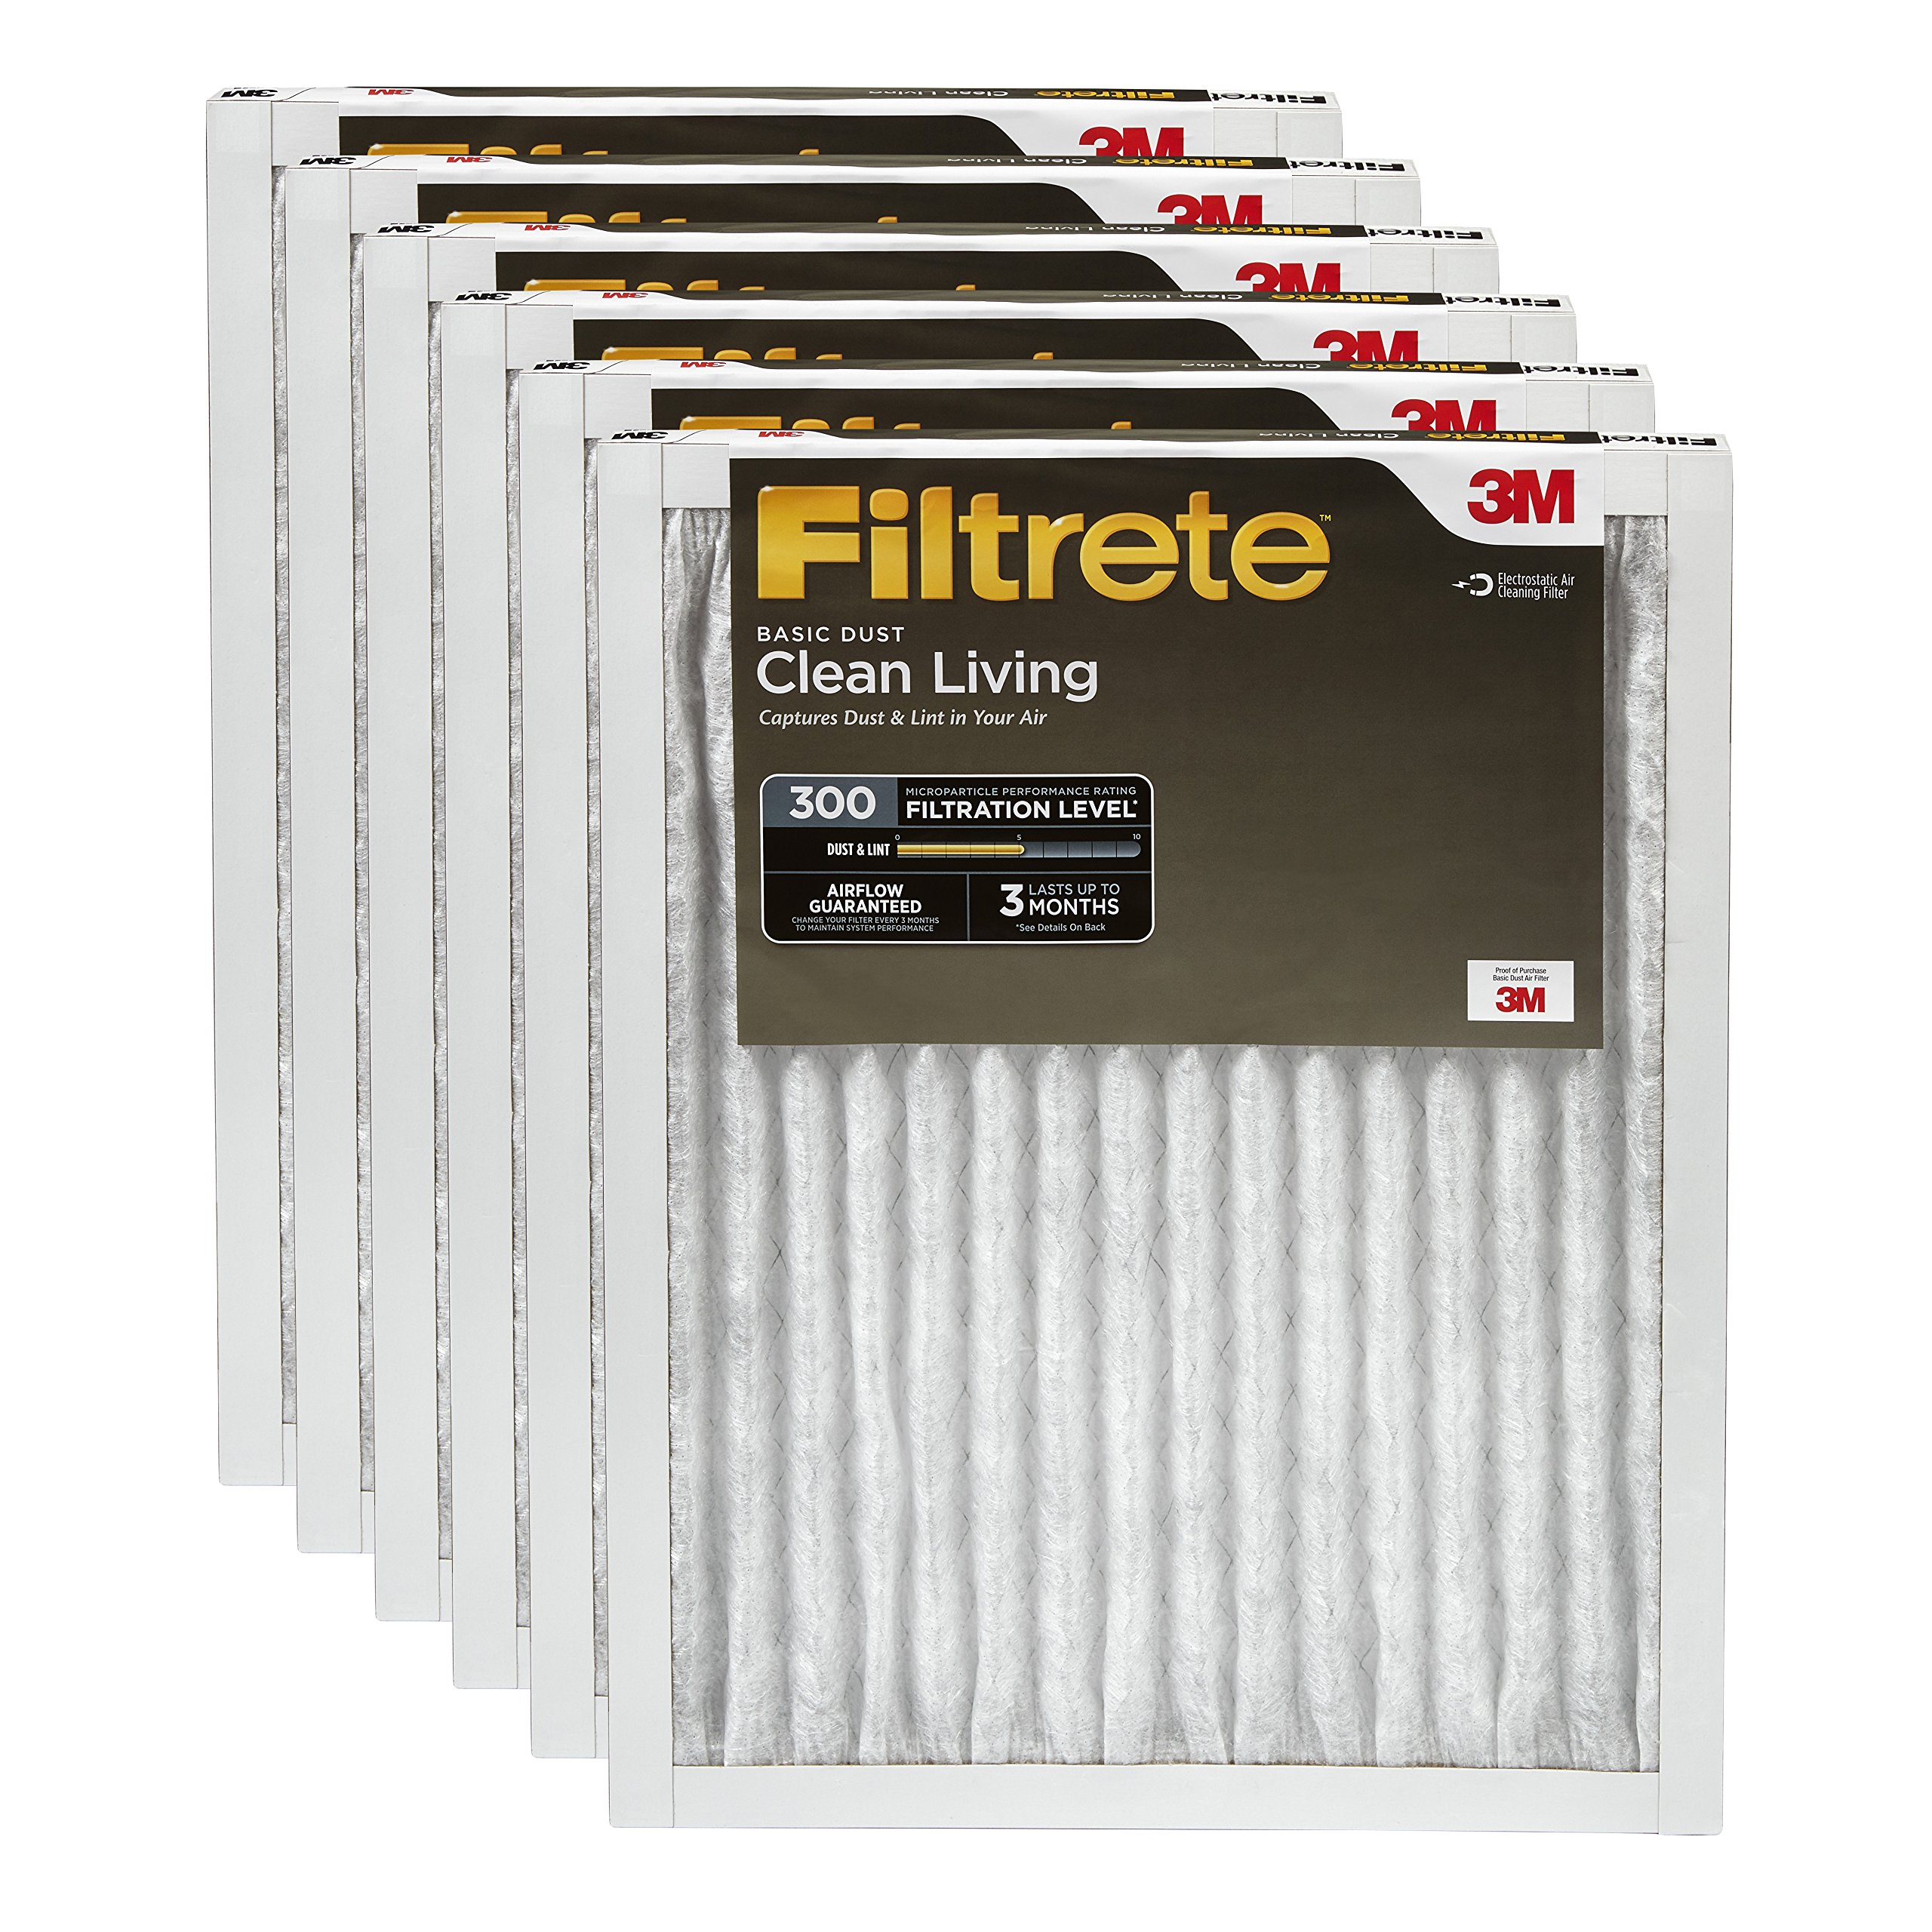 Filtrete Clean Living Basic Dust Filter, MPR 300, 16 x 25 x 1-Inches, 6-Pack by Filtrete